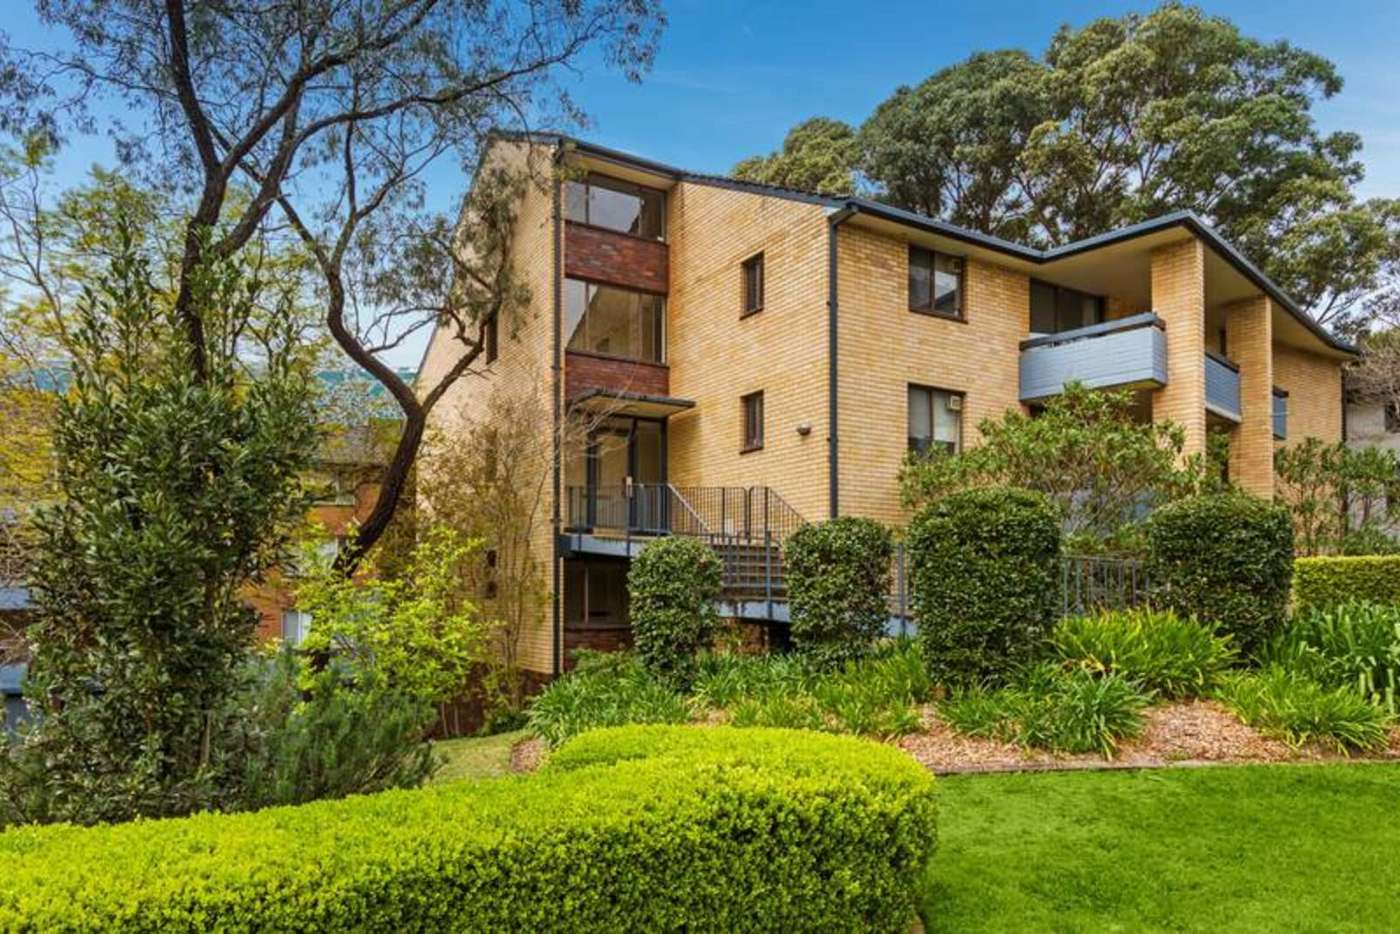 Main view of Homely apartment listing, 7/3-5 Kandy Avenue, Epping NSW 2121